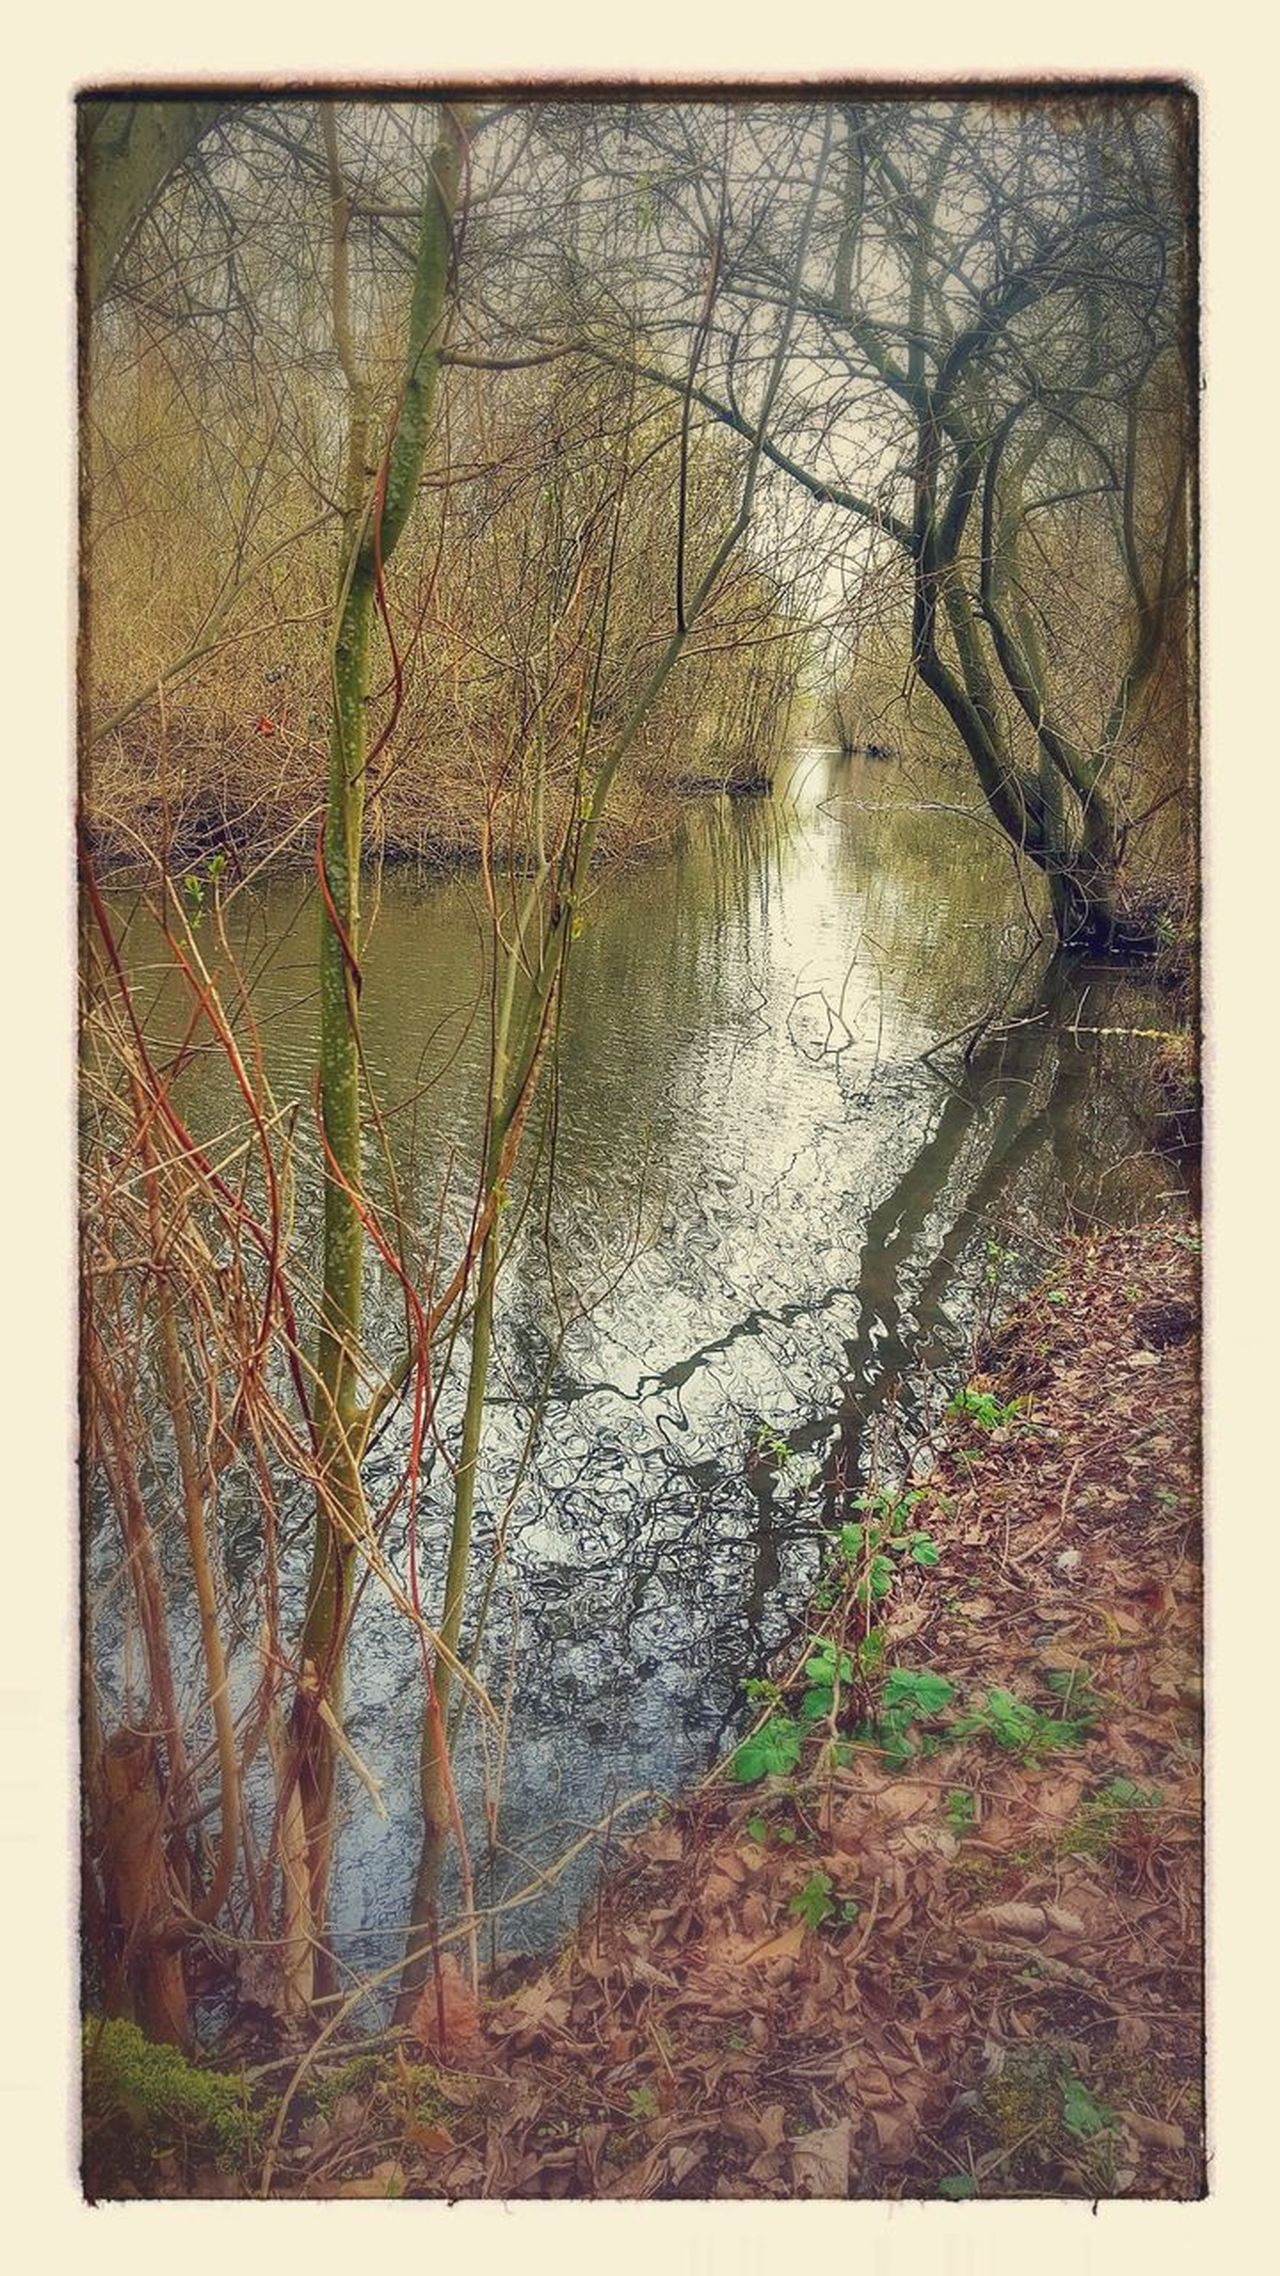 No People Tree Nature Outdoors Water Nature Tranquility